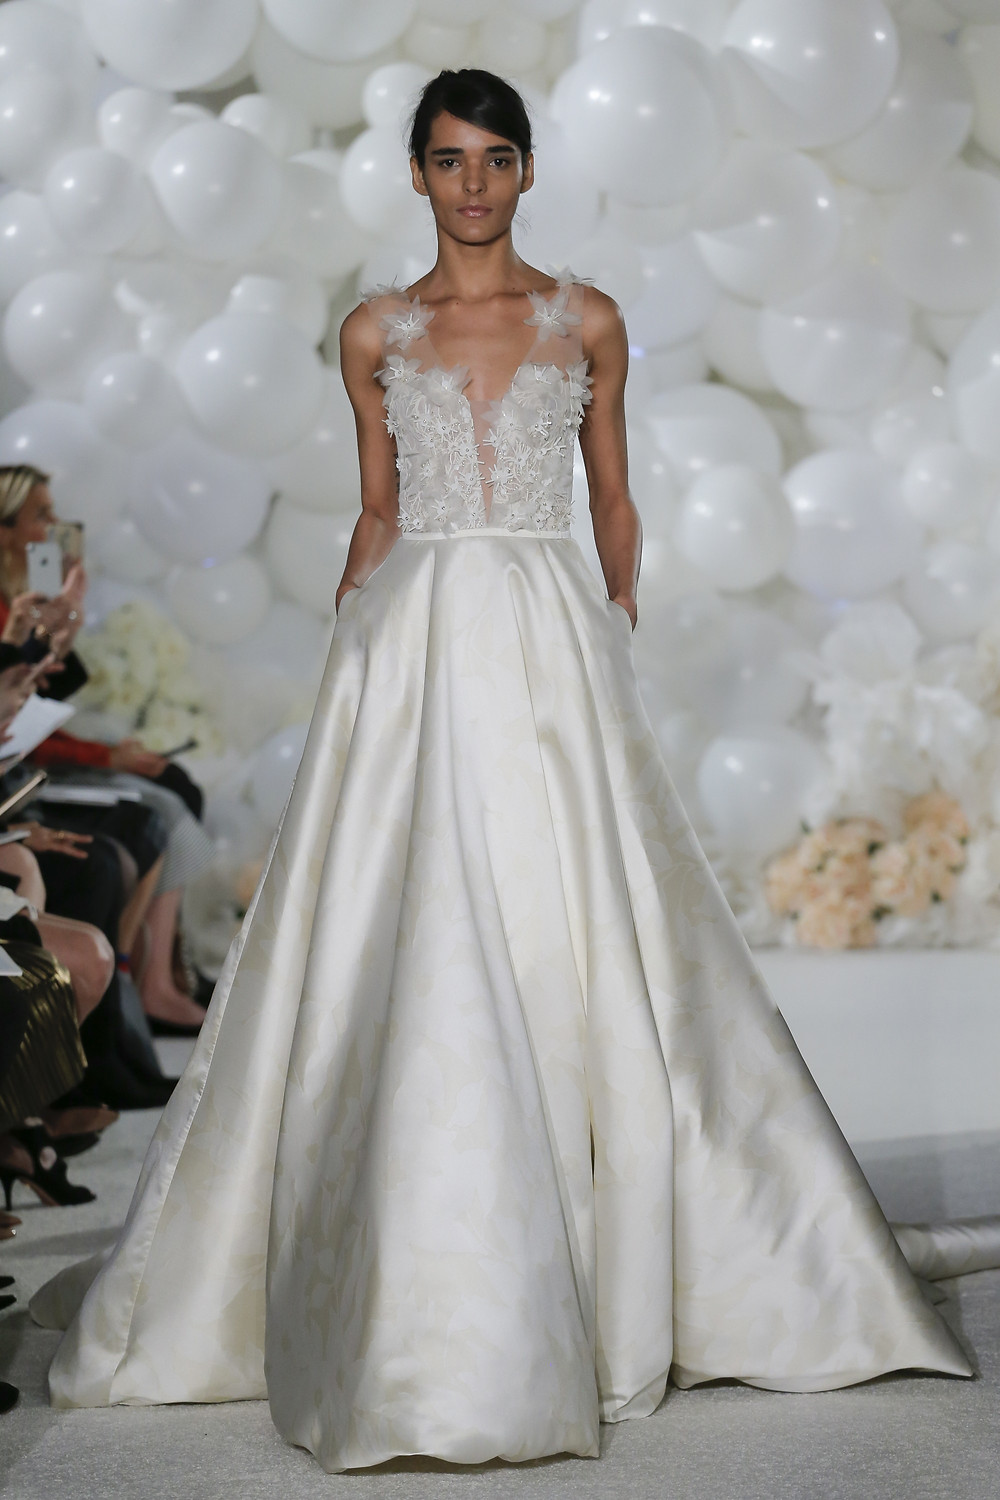 A Mira Zwillinger silk ball gown wedding dress with pockets and tulle flowers